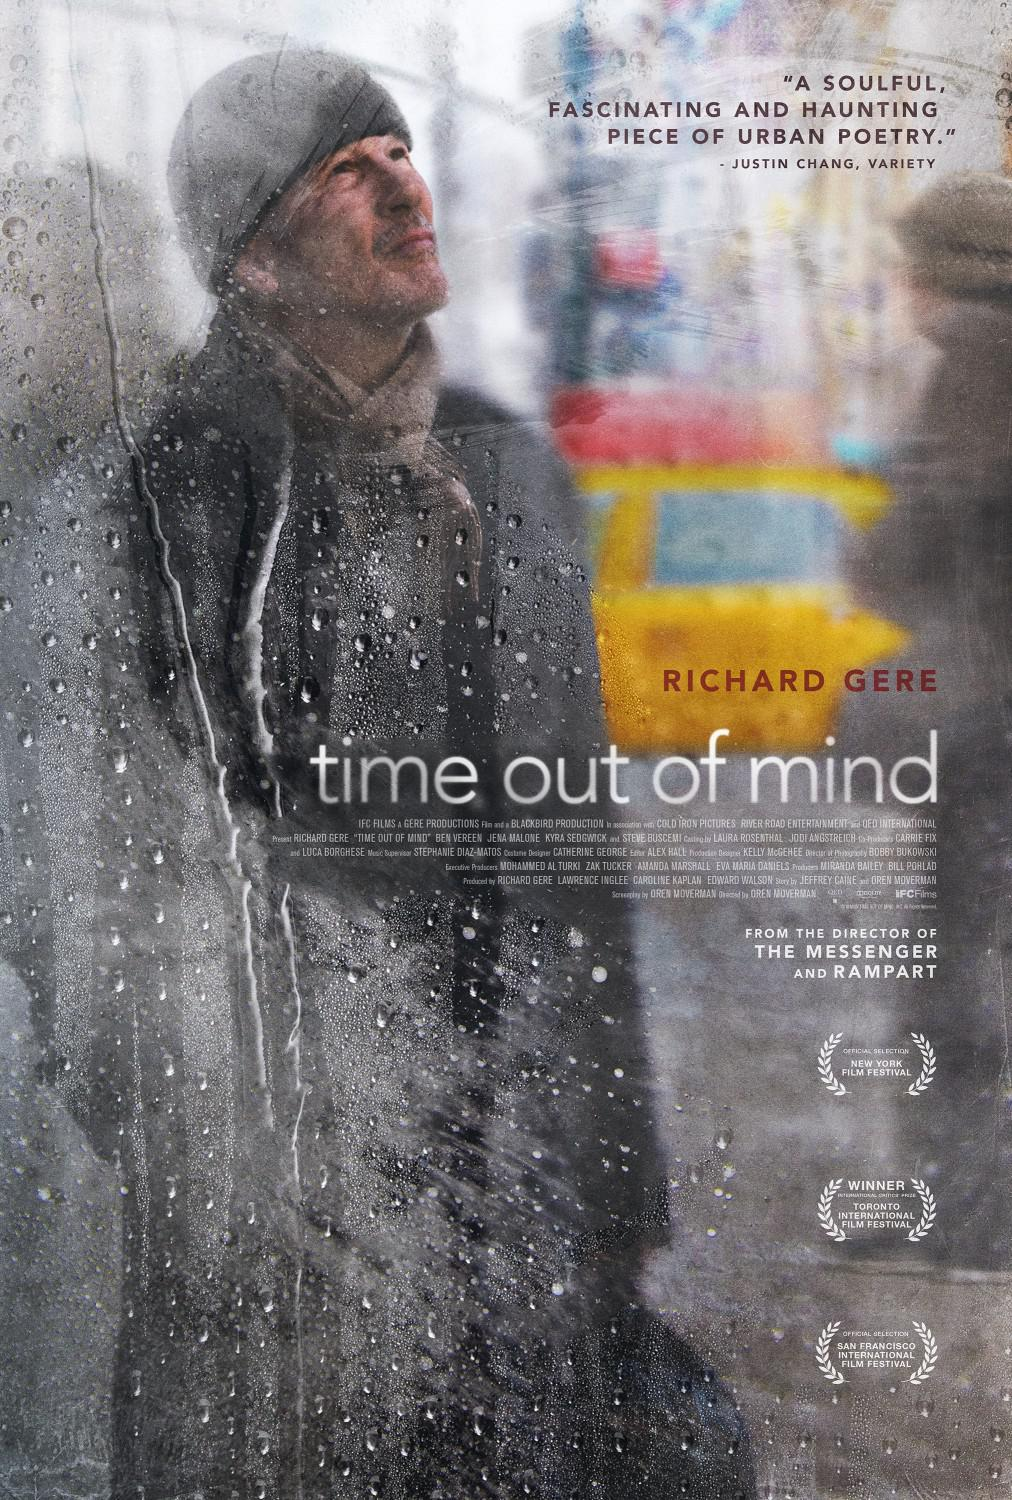 Time out of Mind - Gli Invisibili - Richard Gere - A soulful fascinating and haunting piece of urban poetry